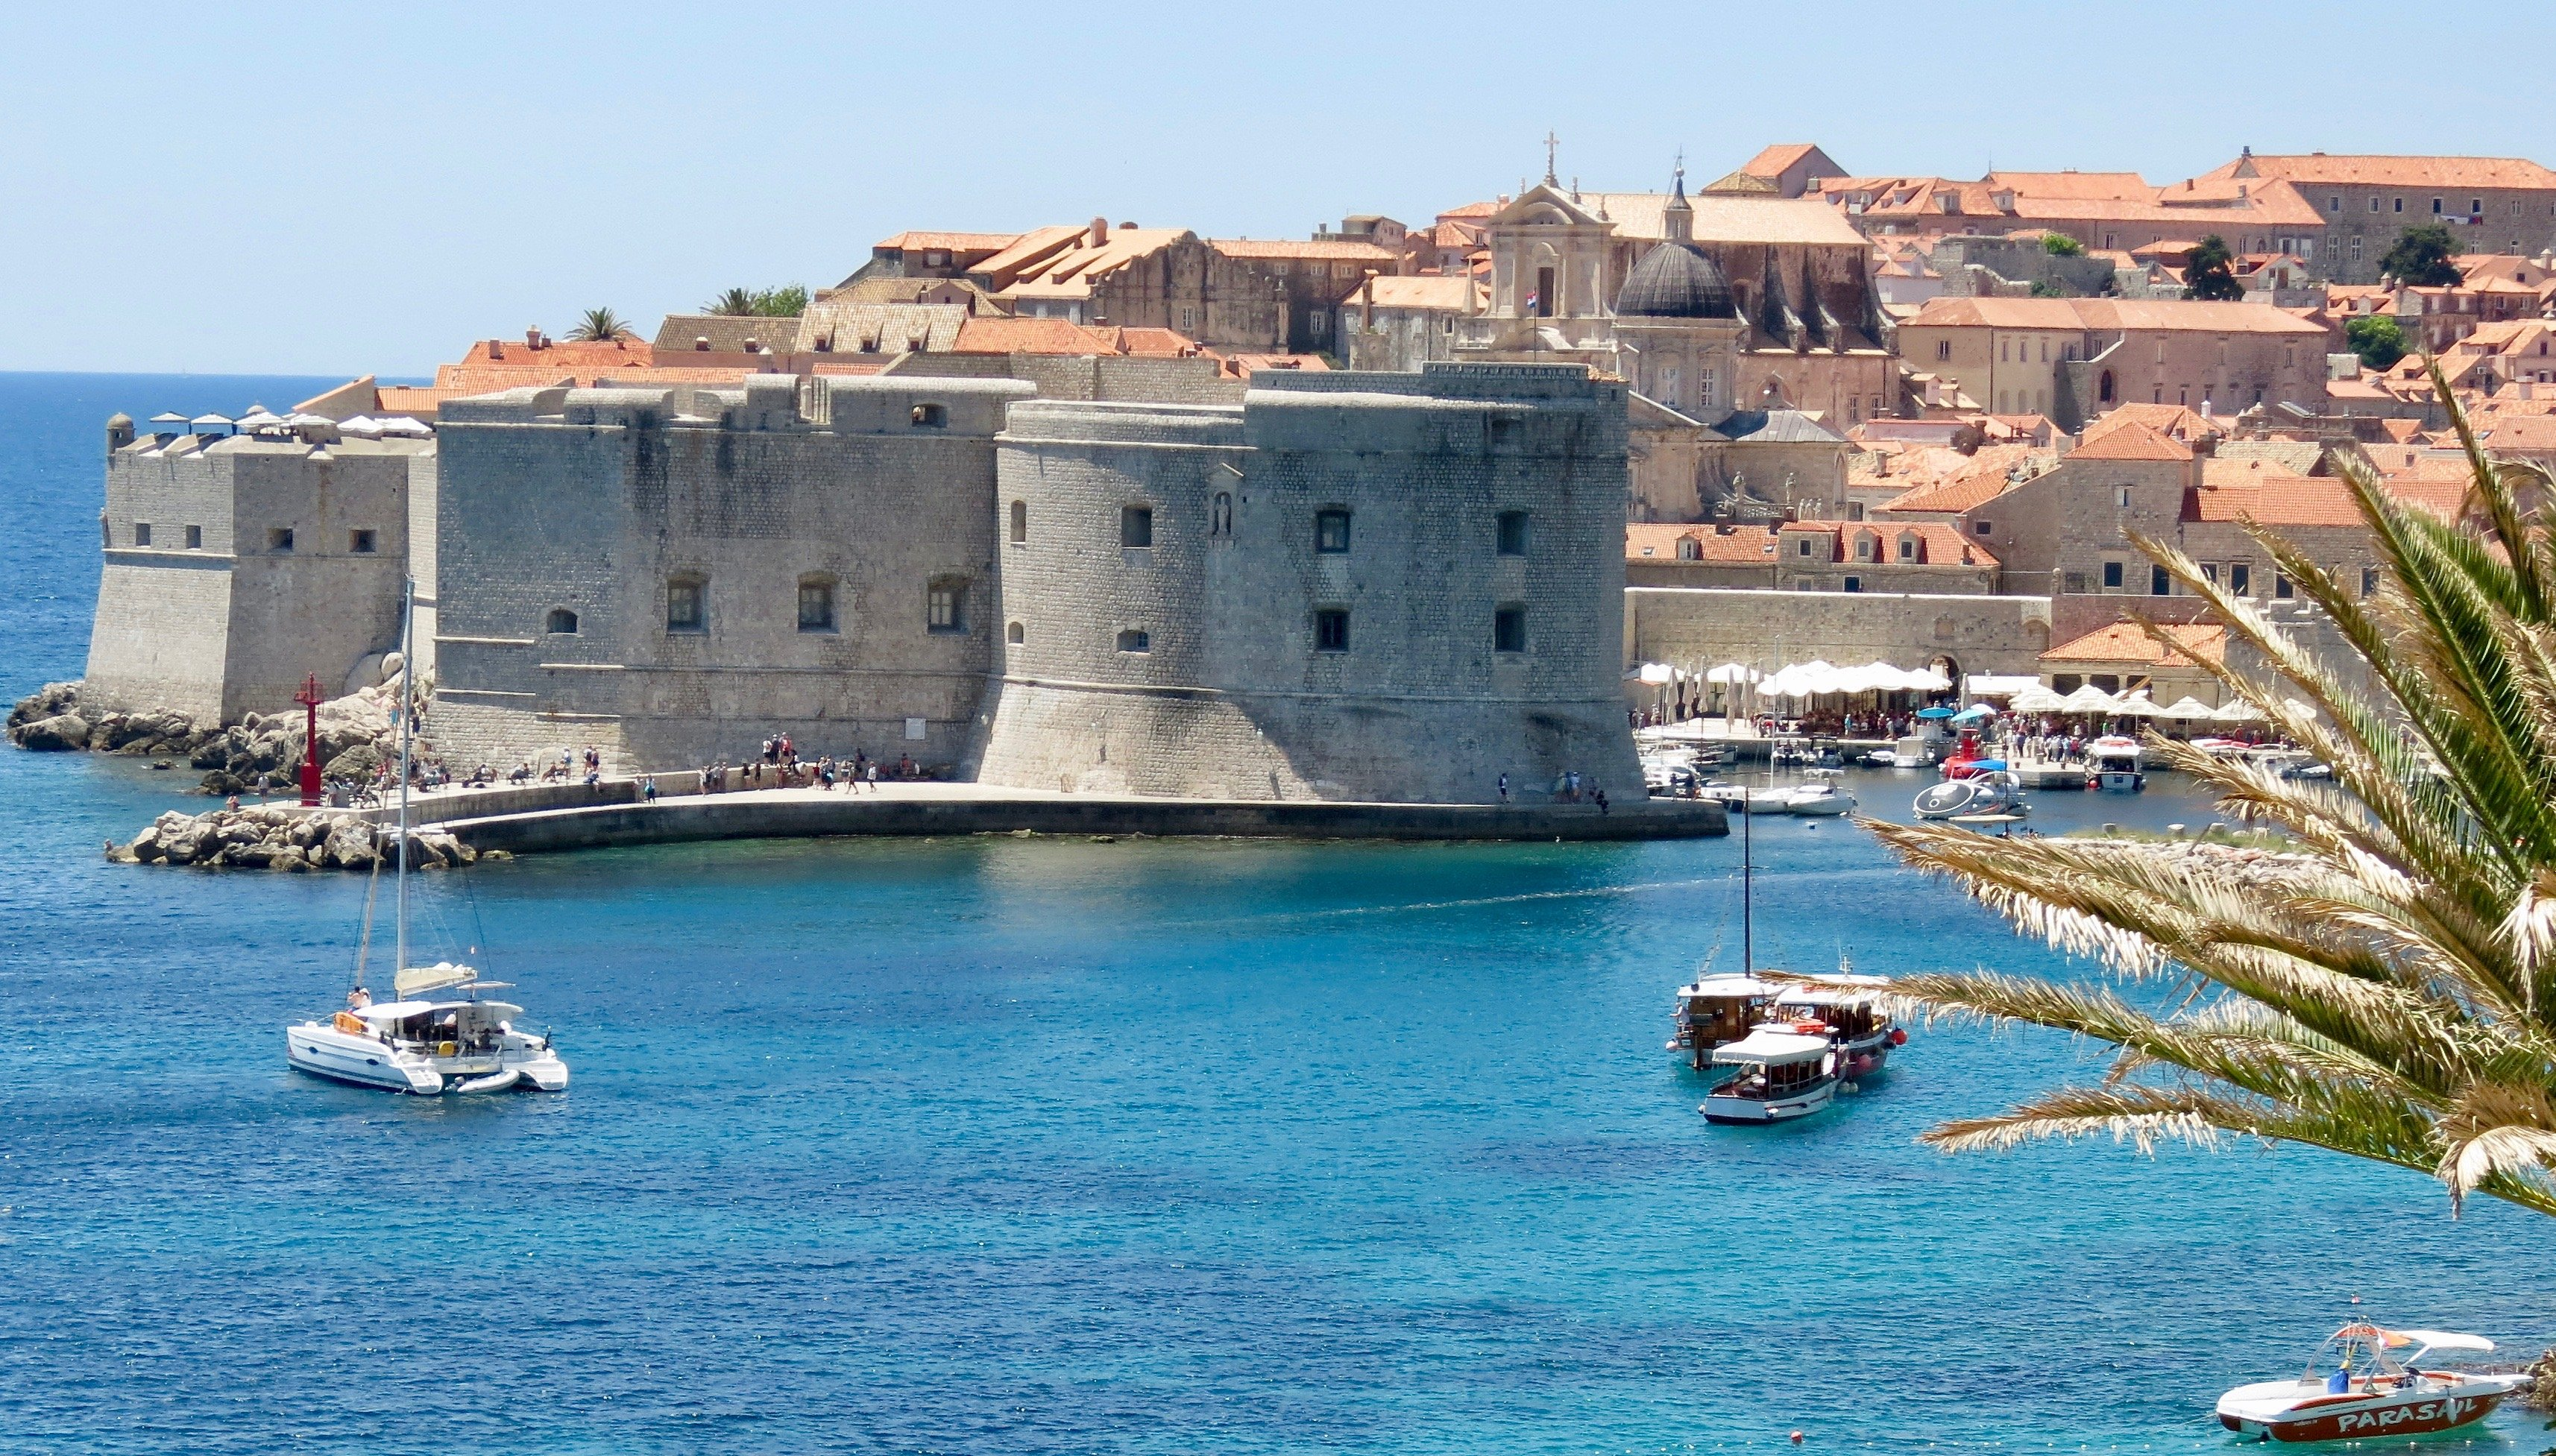 Croatia's Crown Jewel on the Dalmatian Coast: Dubrovnik